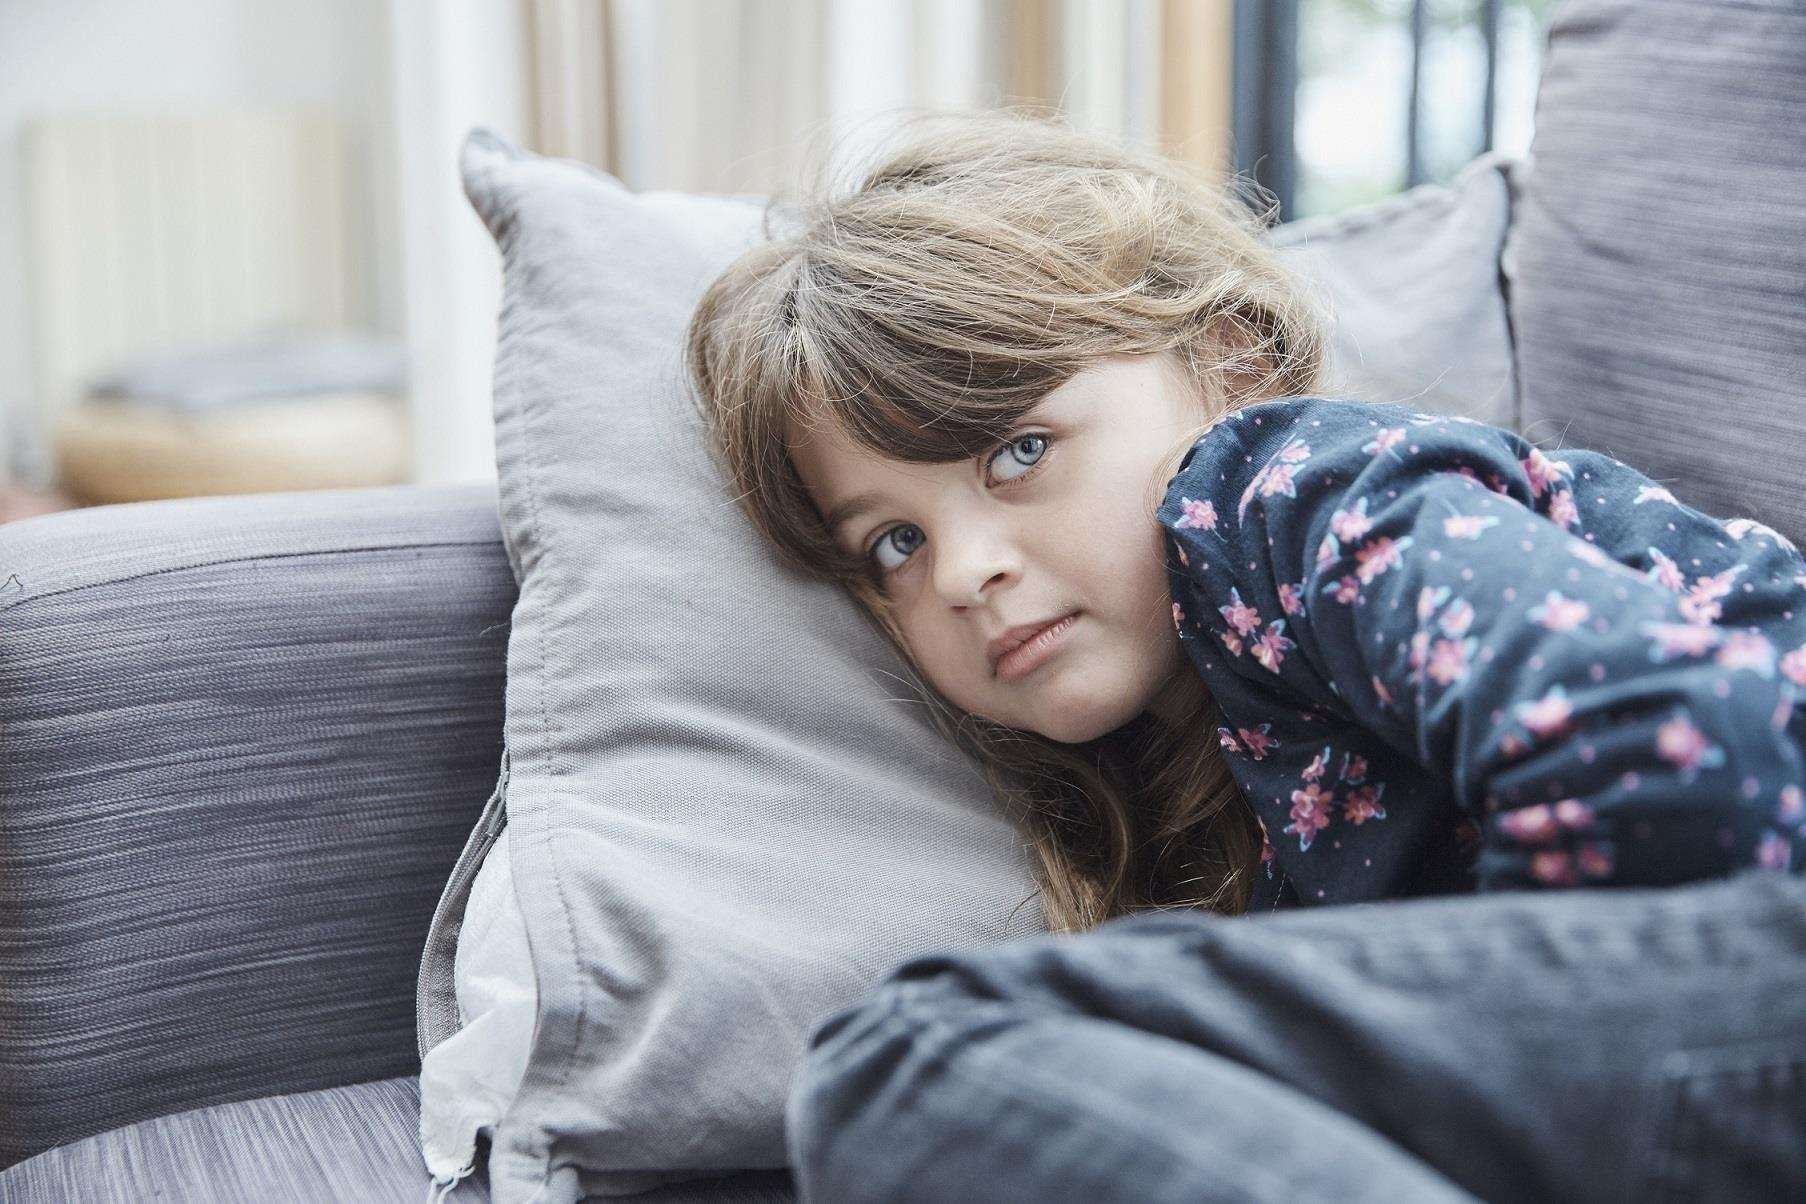 Children may be at more risk if their parents have problems with drugs, alcohol and mental health or if they live in a home where domestic abuse happens